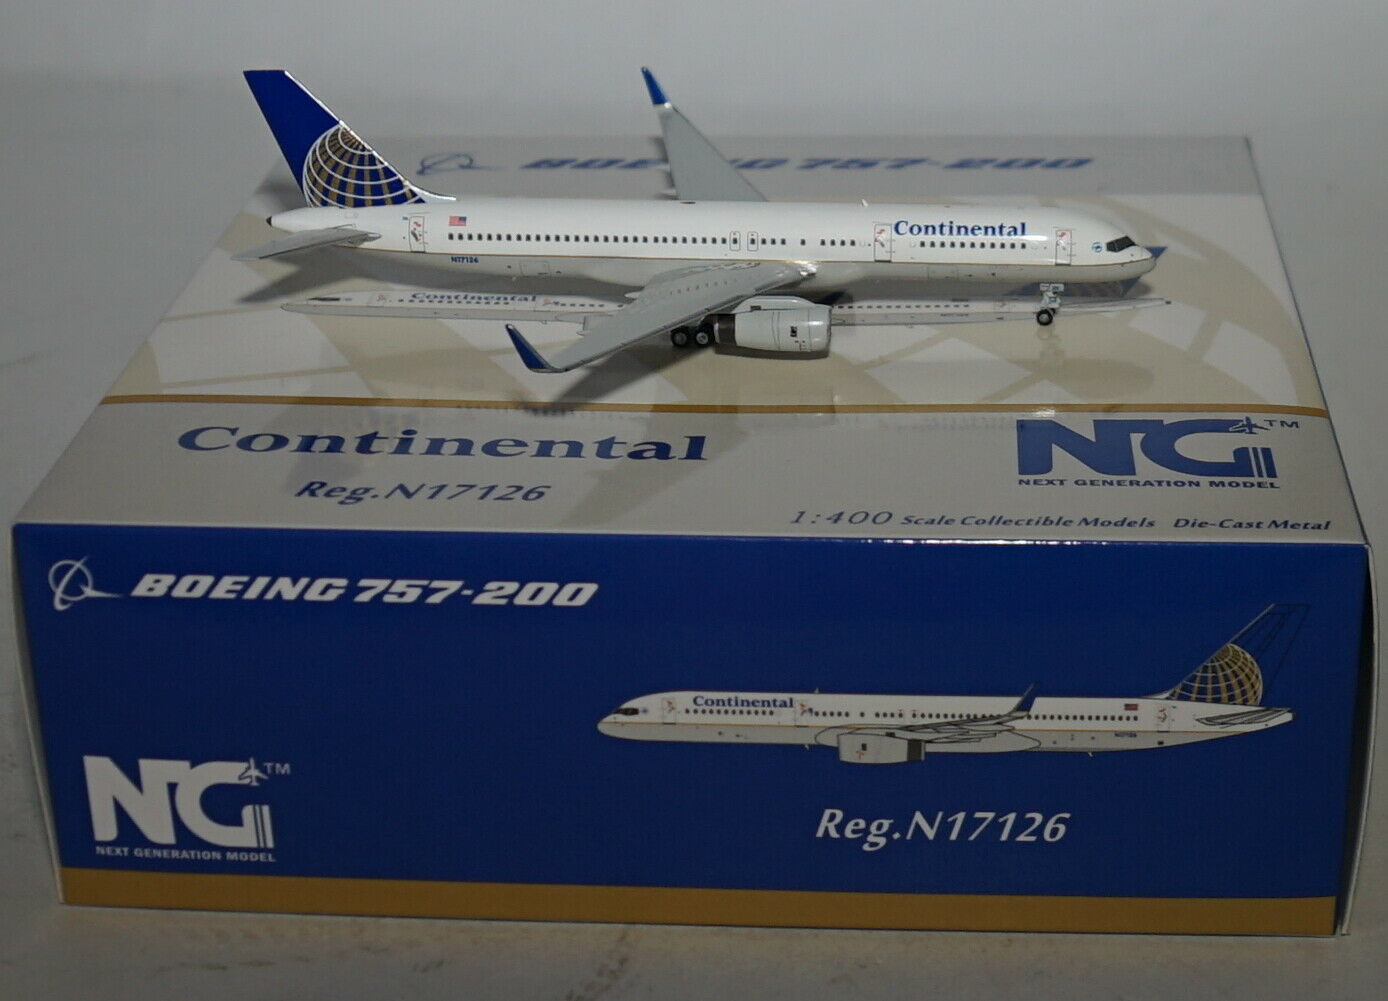 NG Model 53050 Boeing 757-224wl Continental Airlines N17126 in 1 400 Scale